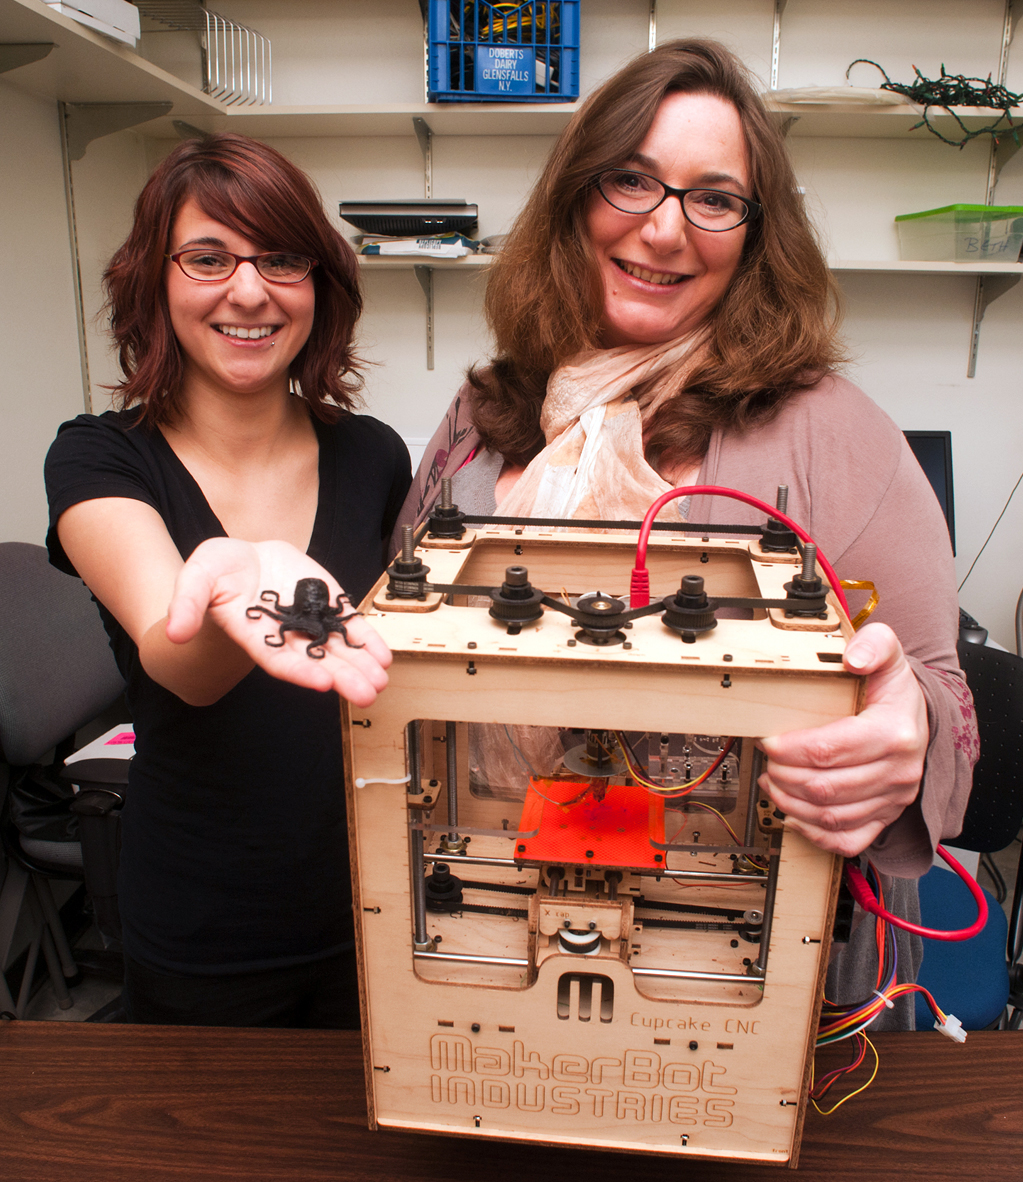 Beth Kolko and master's student Alexis Hope together conceived of Hackademia. They hold a student-built 3-D printer and an octopus that was created with it.